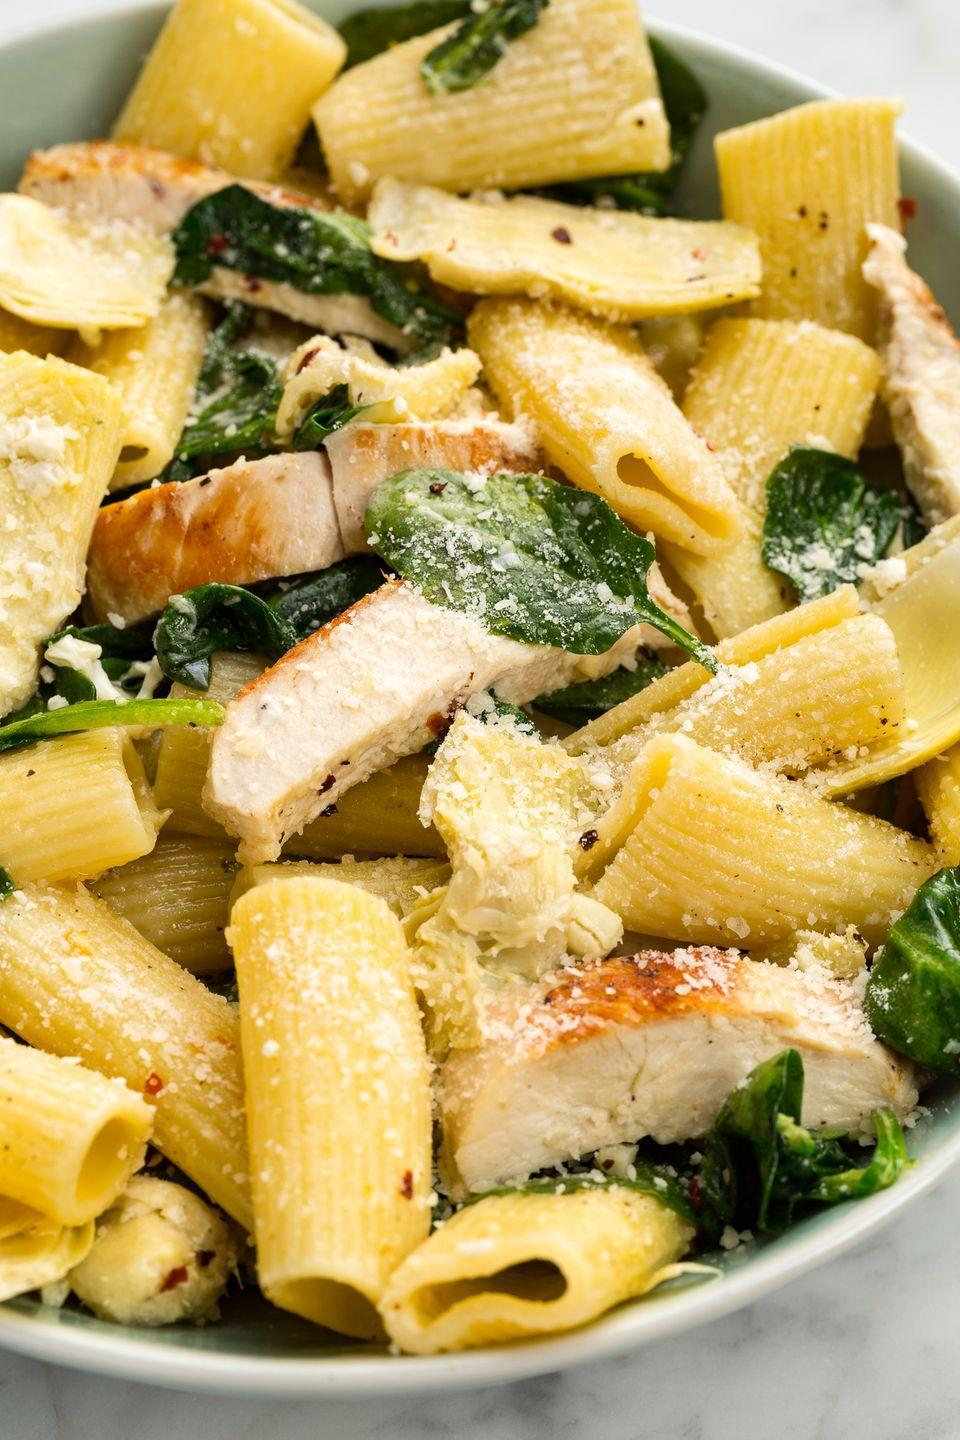 "<p>Your favorite dip deconstructed as a healthy pasta? Yes, please.</p><p>Get the recipe from <a href=""https://www.delish.com/cooking/recipe-ideas/recipes/a46527/chicken-spinach-and-artichoke-rigatoni-recipe/"" rel=""nofollow noopener"" target=""_blank"" data-ylk=""slk:Delish"" class=""link rapid-noclick-resp"">Delish</a>.</p>"